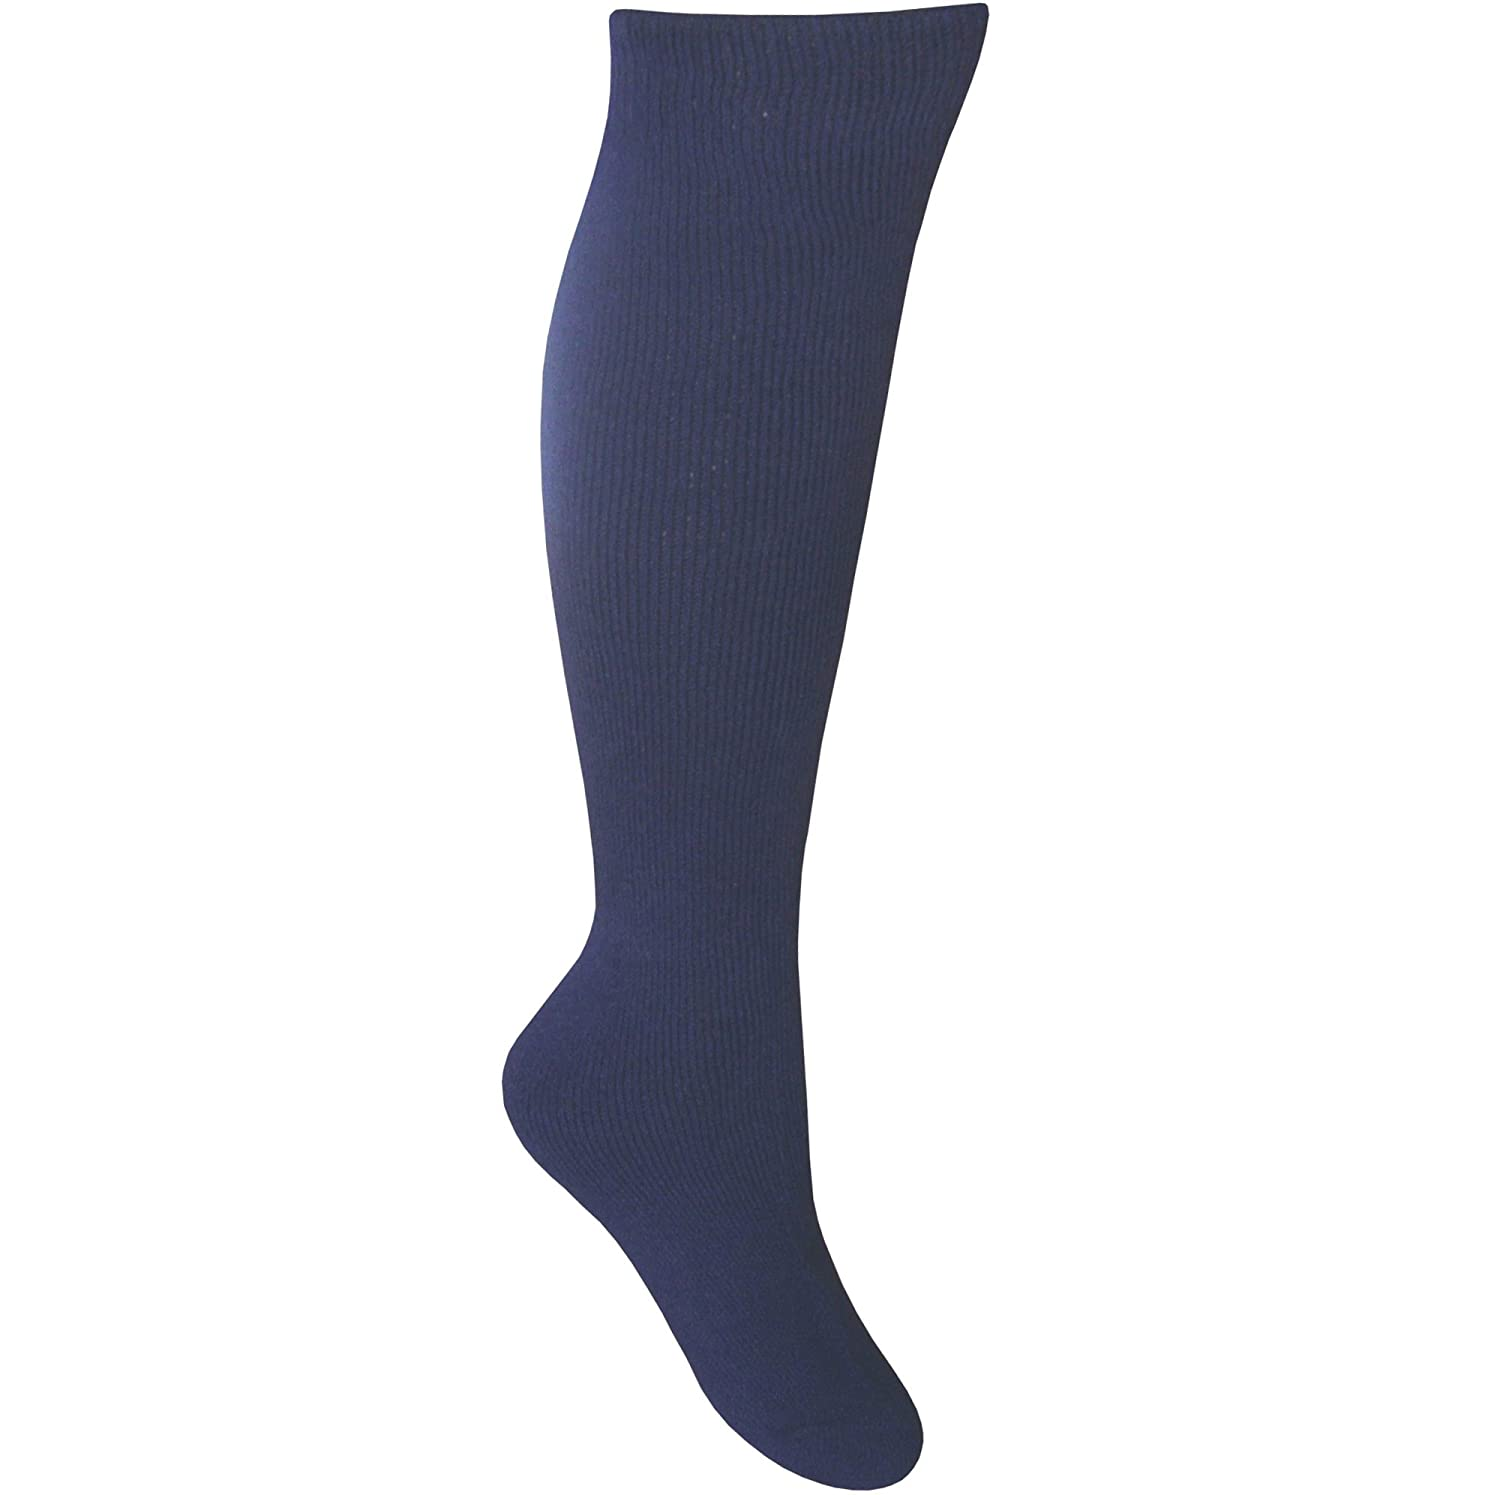 Men's Cushioned Calf Length Gentle Grip Long Wellington Boot Thermal Socks MensWellingtonBootSocksBLK